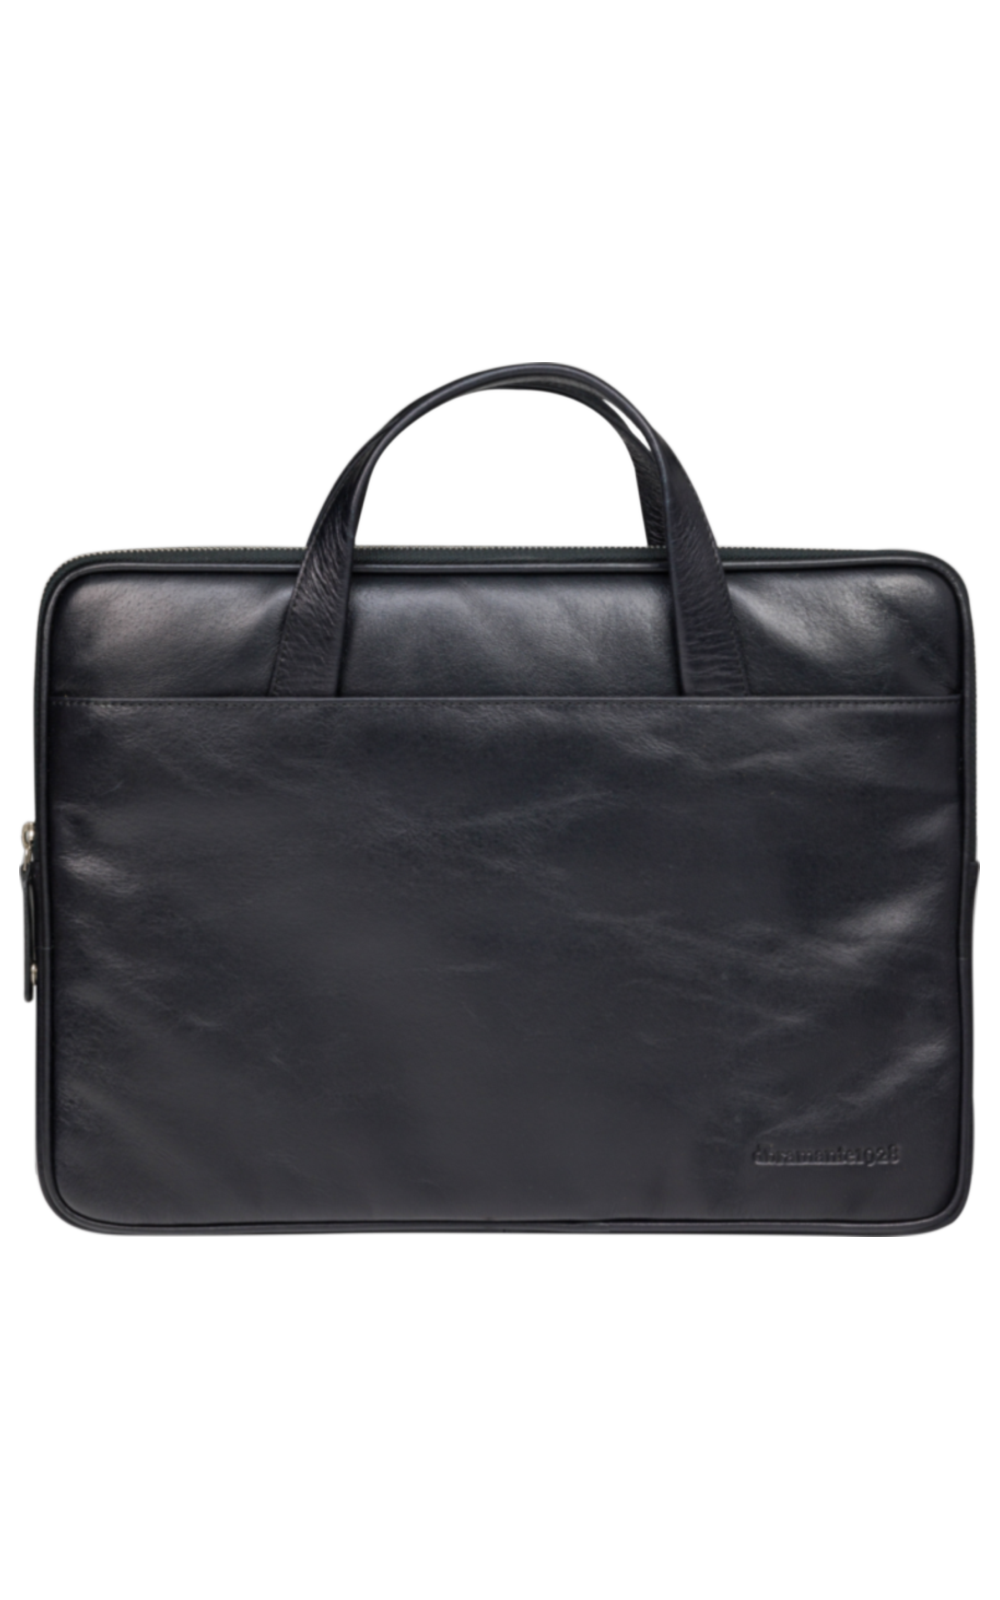 dbramante1928 Slim Case Black